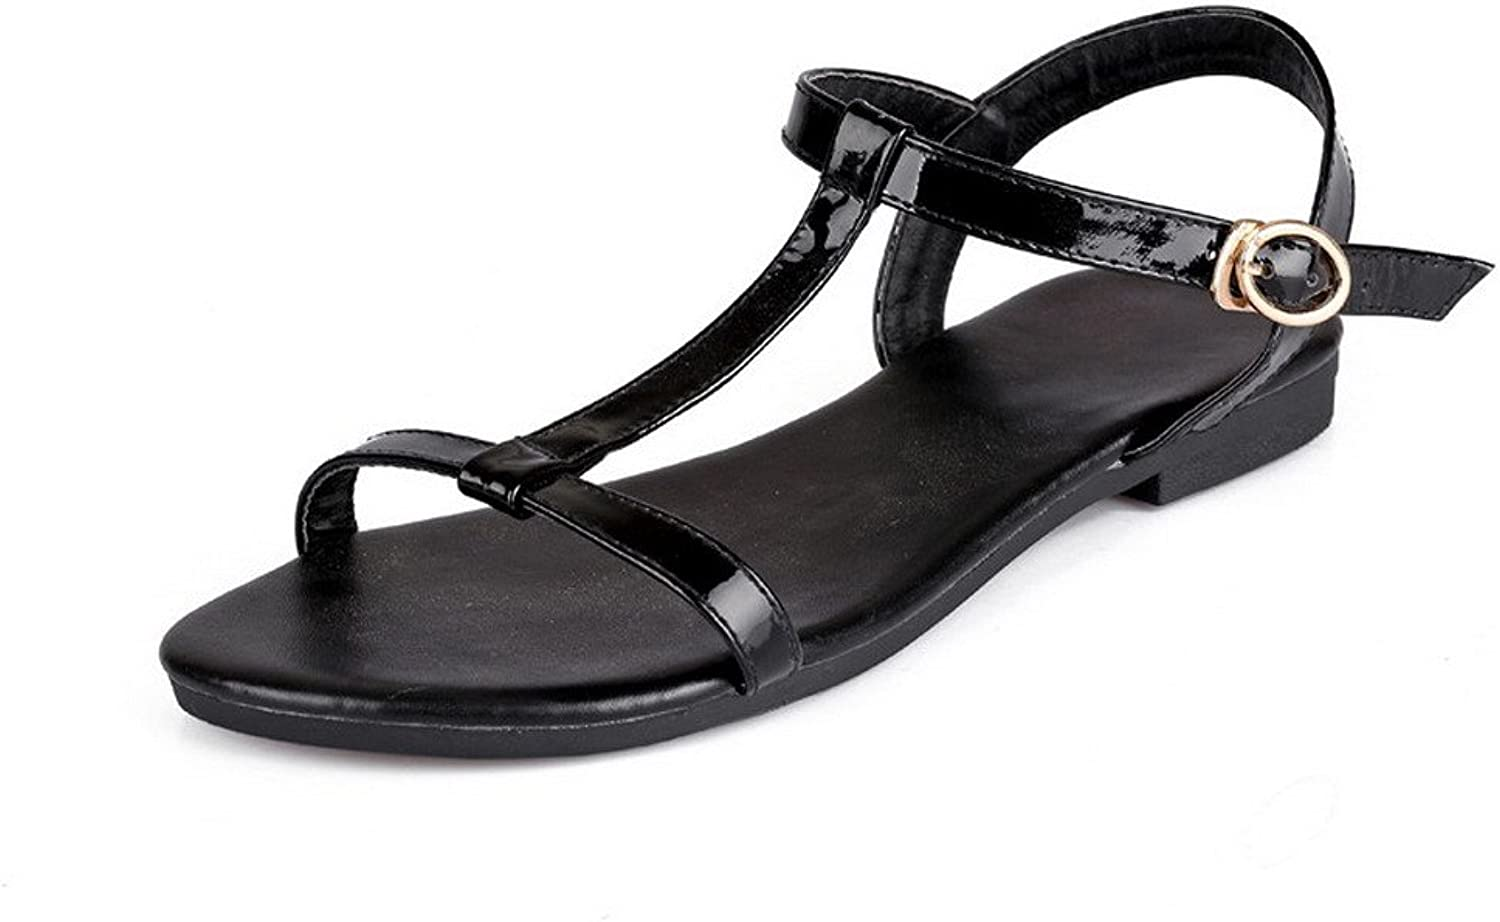 WeiPoot Women's No-Heel Patent Leather Solid Buckle Open Toe Flats-Sandals